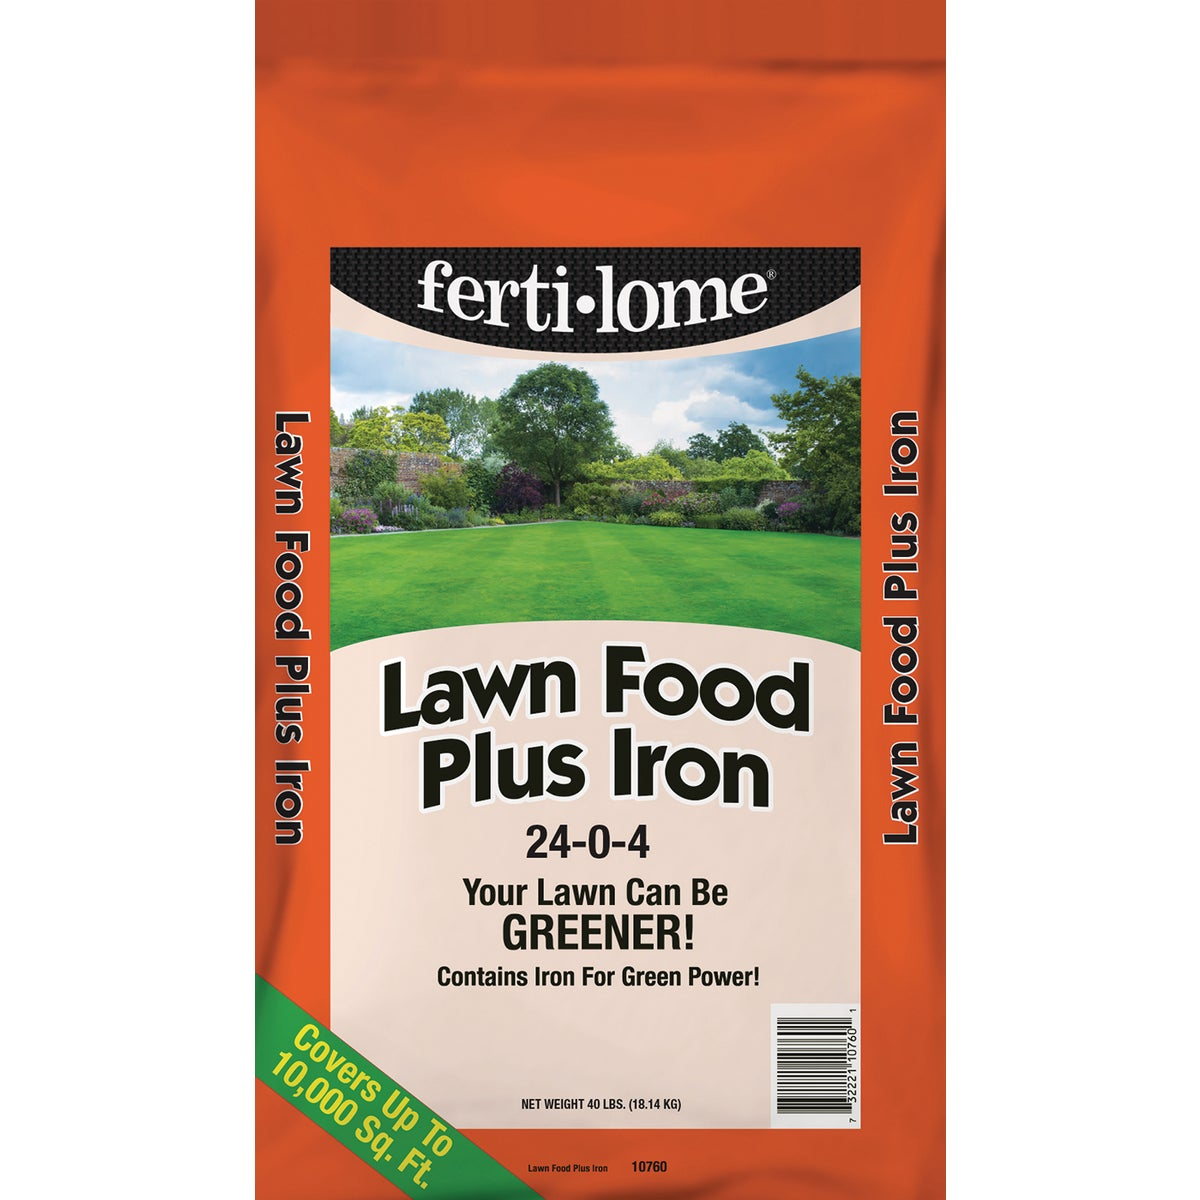 40LB LAWN FOOD PLUS IRON - 10760 by Vpg Fertilome